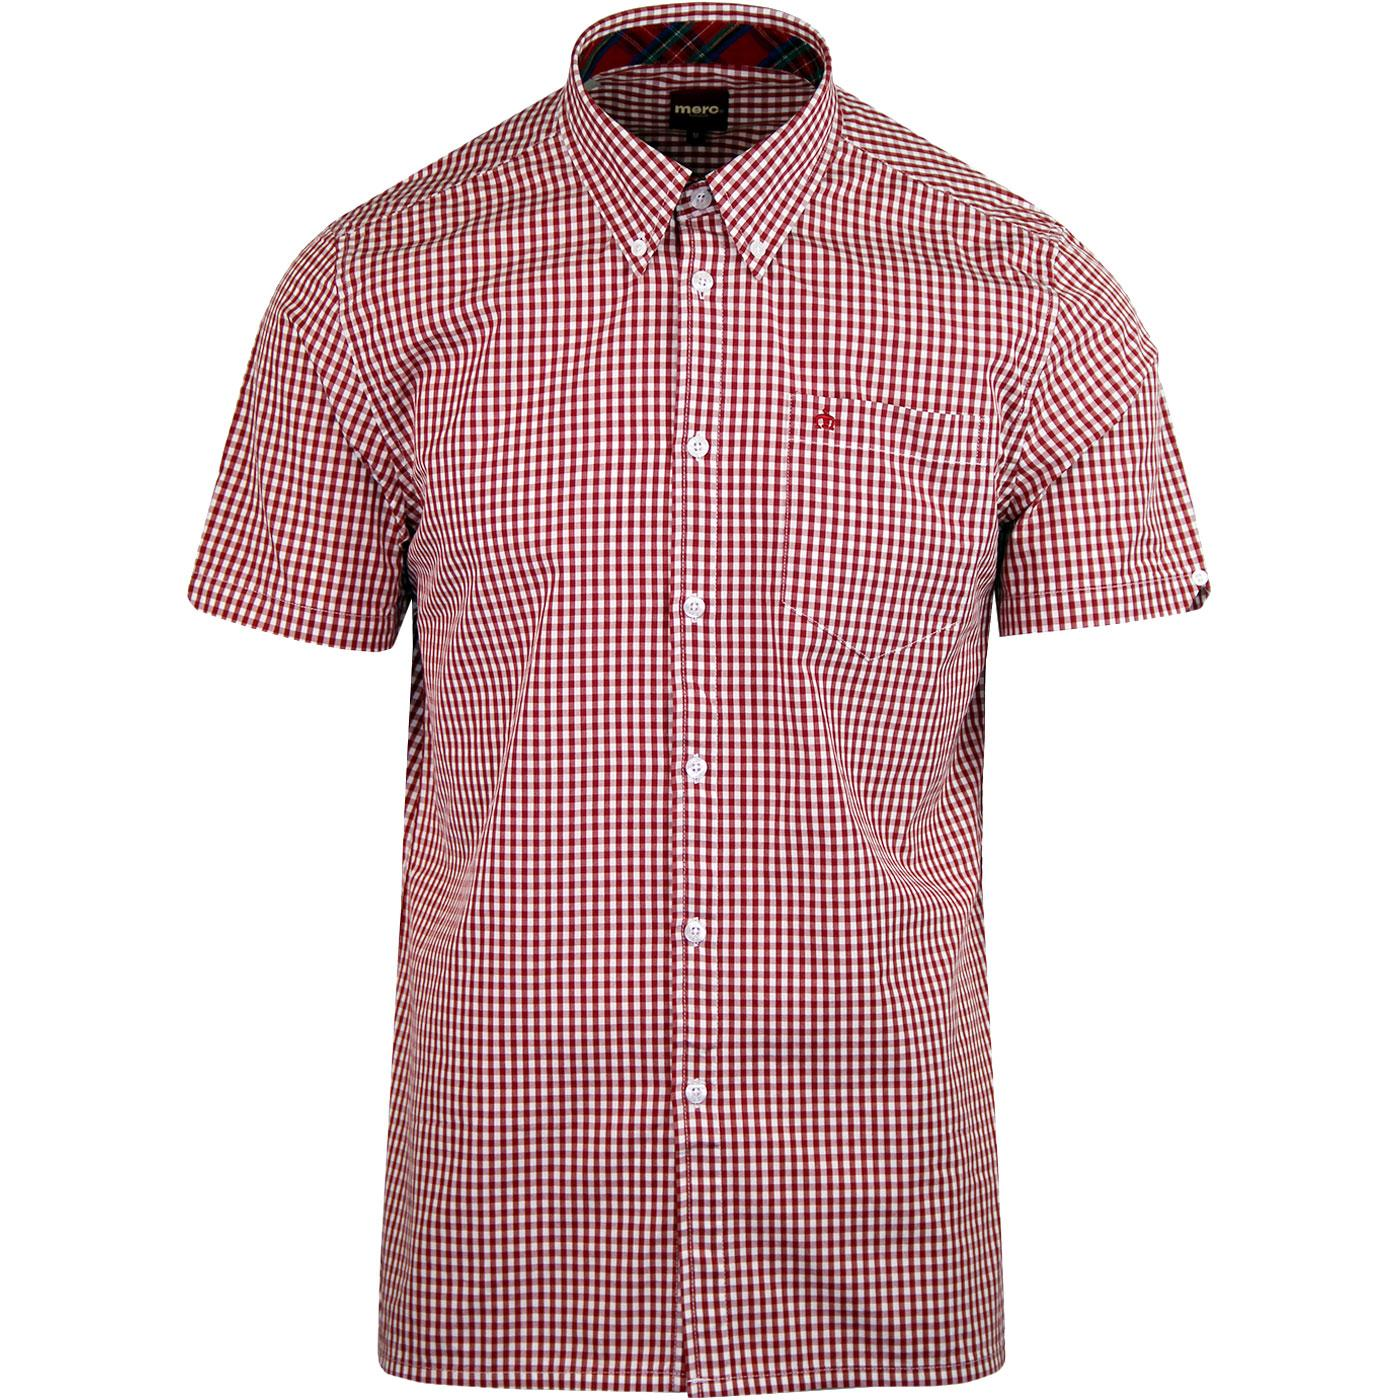 Terry MERC Sixties Mod Mens Retro Gingham Shirt R